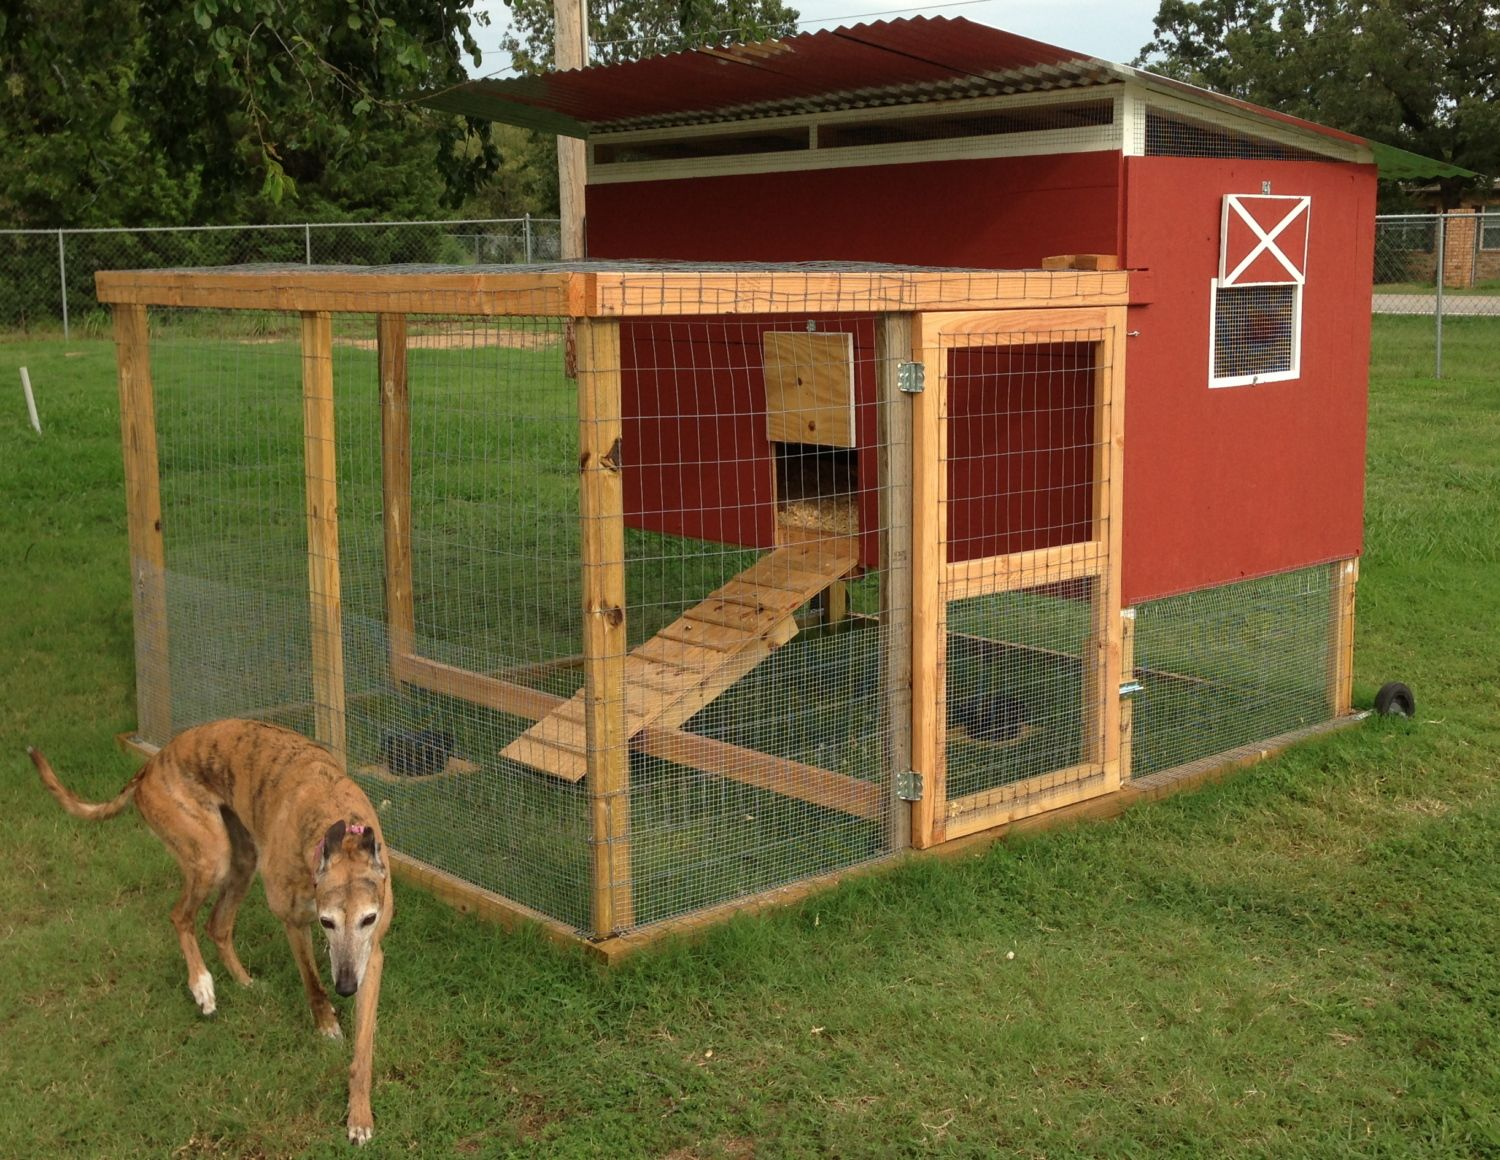 Barn tractor mobile home backyard chickens community for Mobile chicken coops